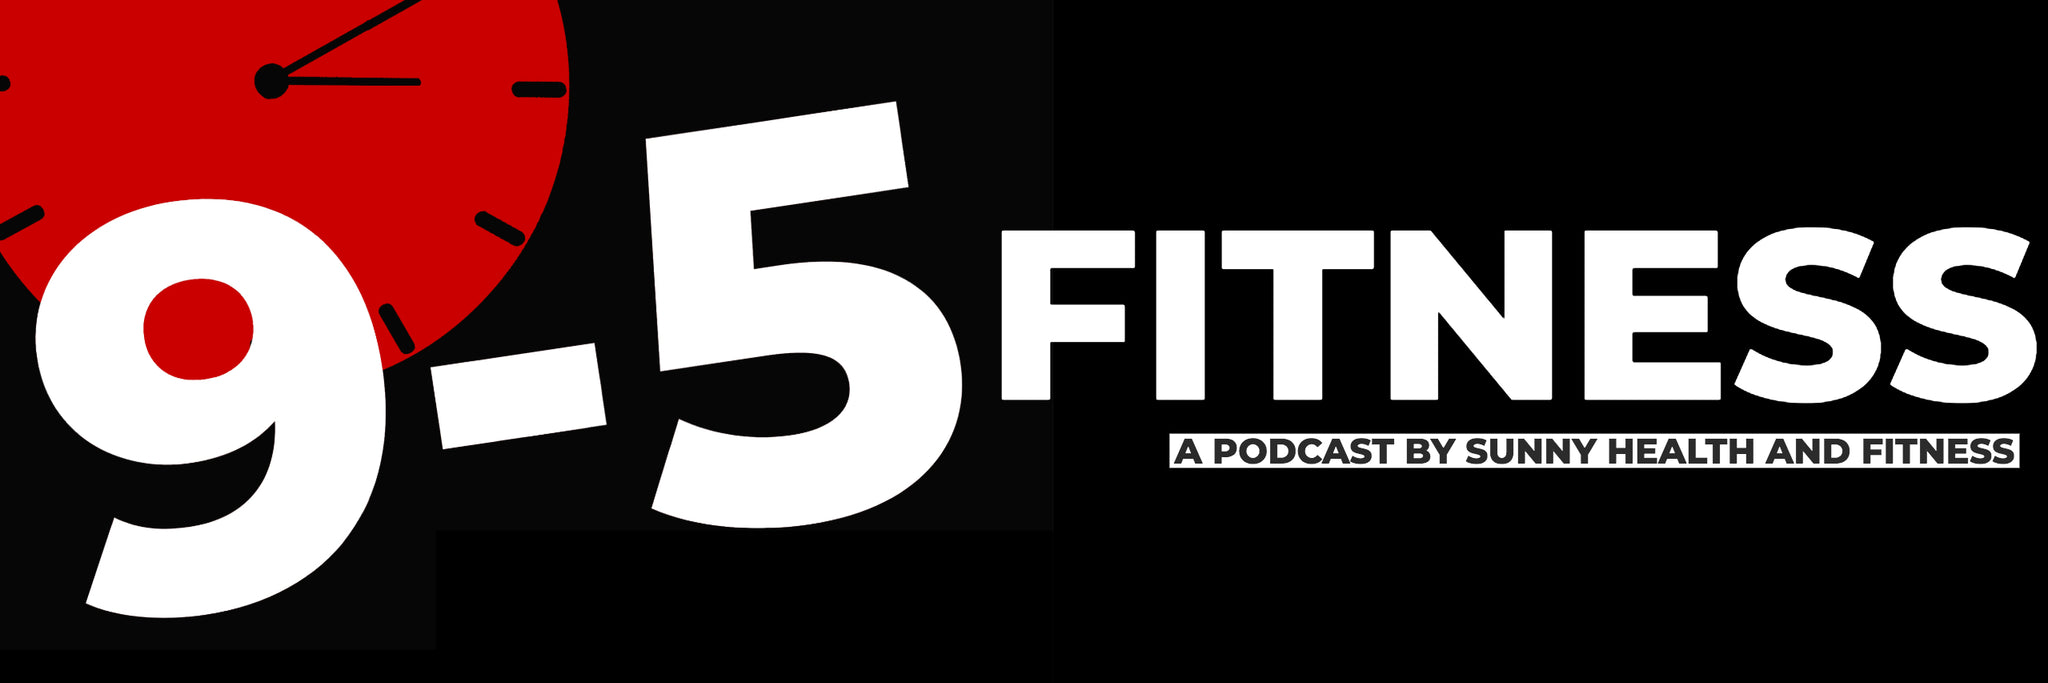 9 to 5 podcast banner with red clock icon in left upper corner